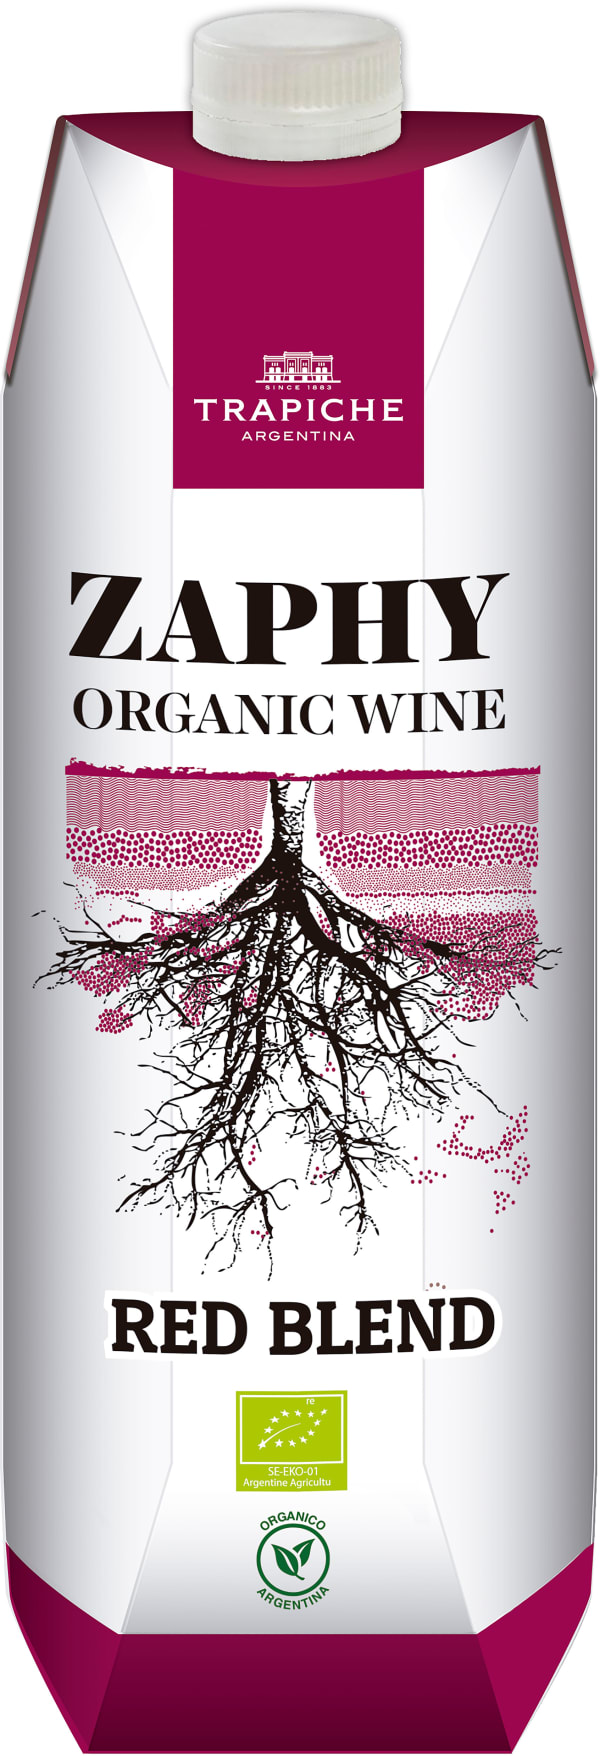 Trapiche Zaphy Organic red blend 2018 kartongförpackning